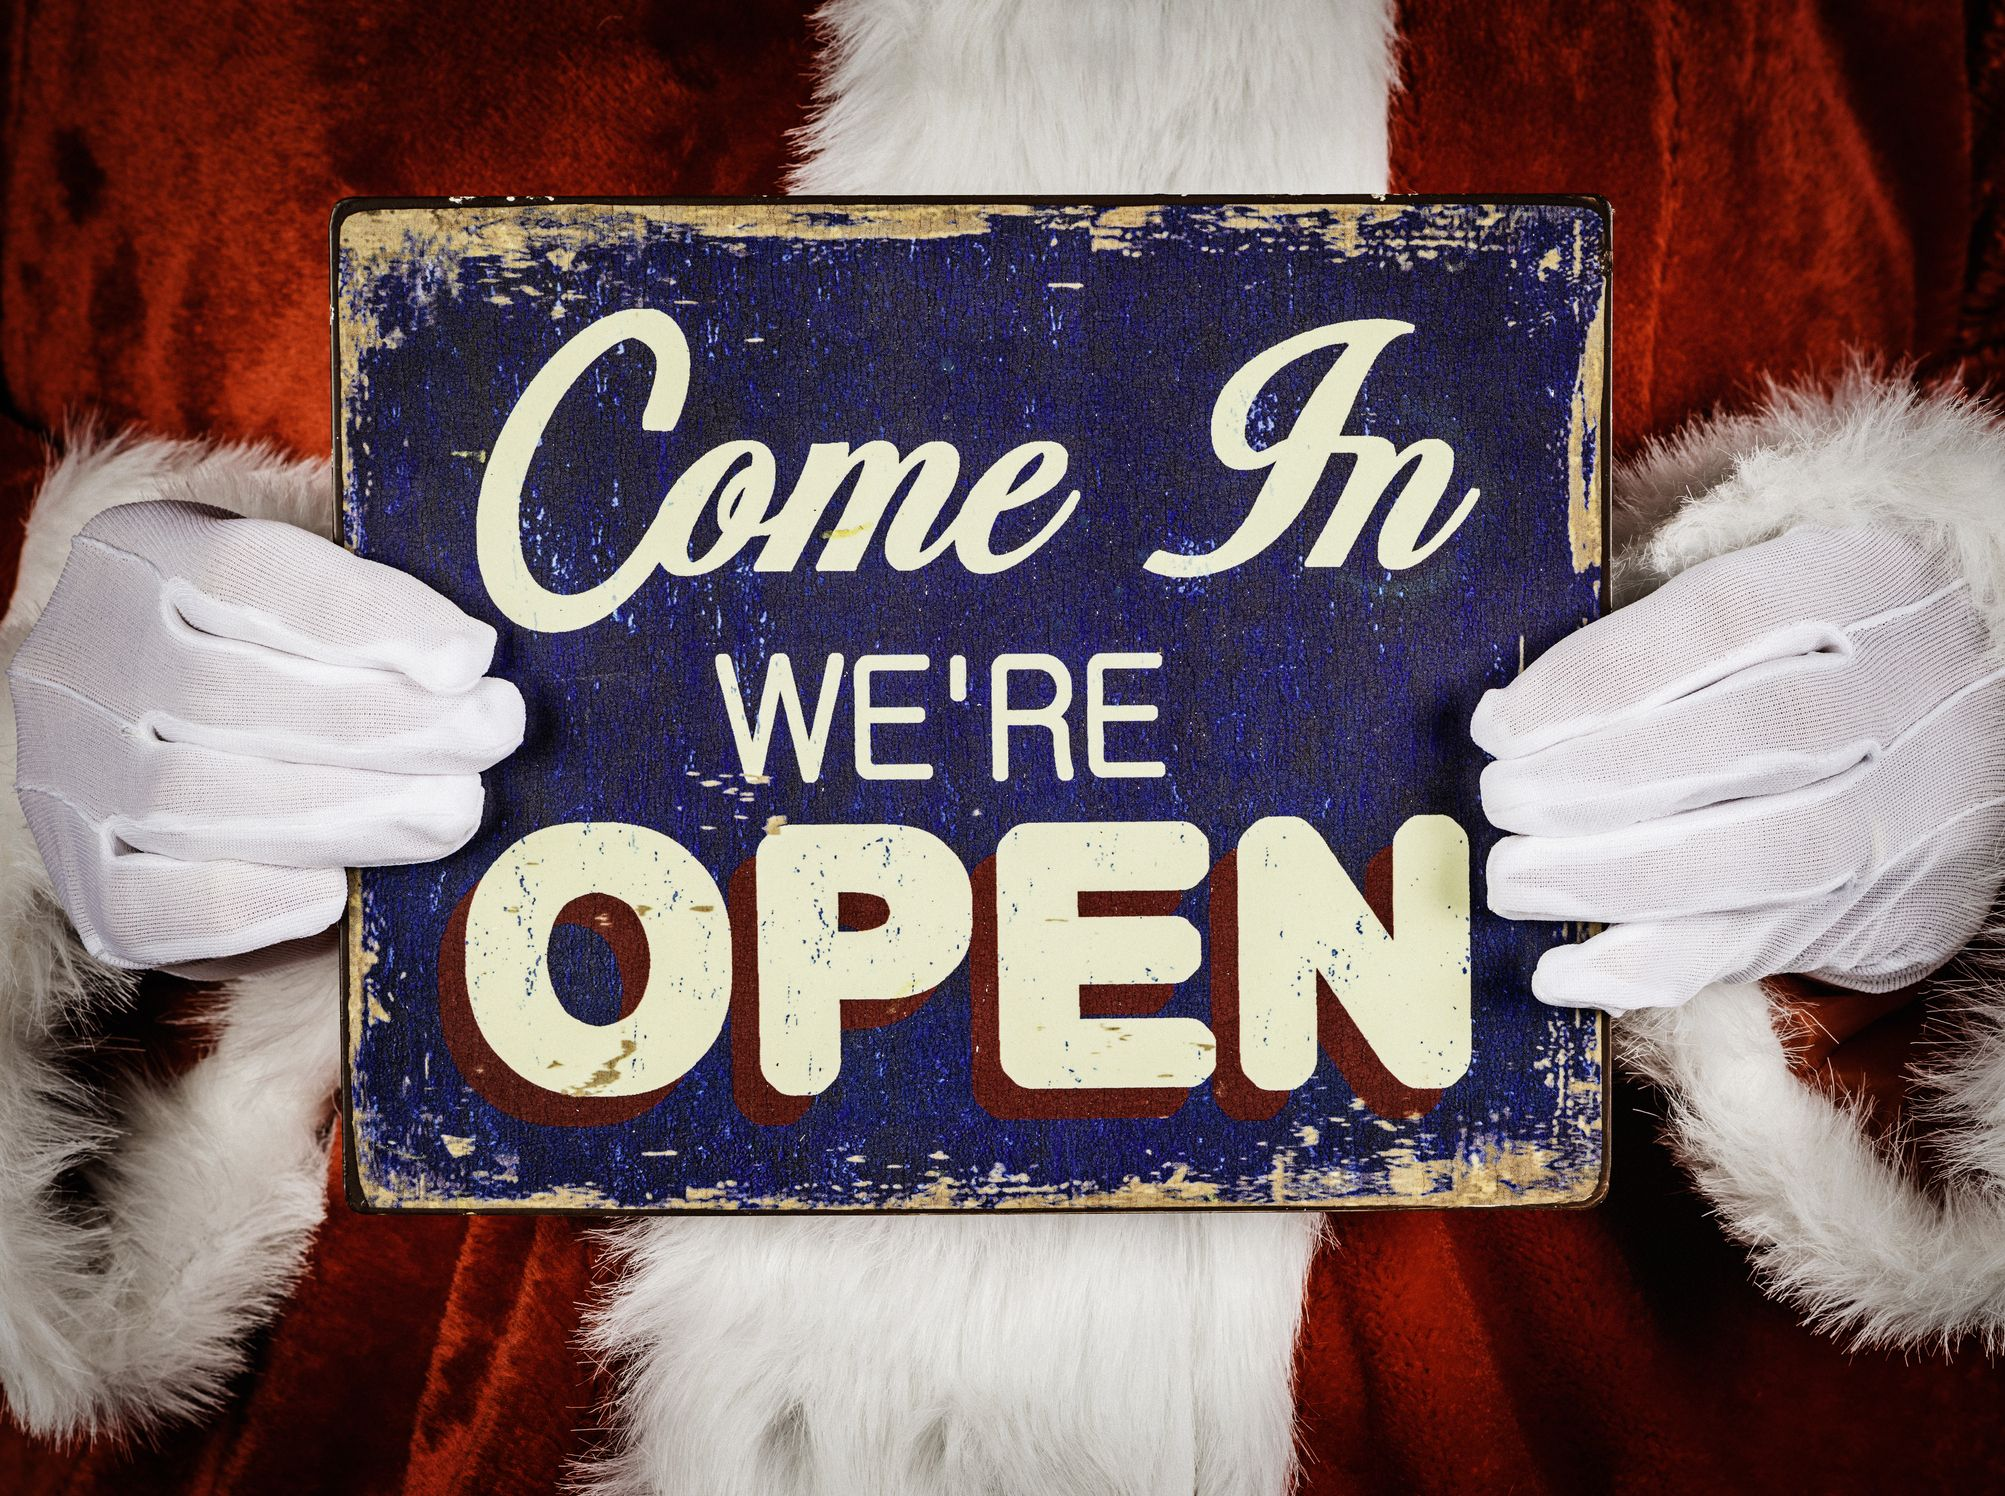 How Many Days Since Christmas 2019 What Stores Are Open on Christmas Day 2019?   Christmas Store Hours